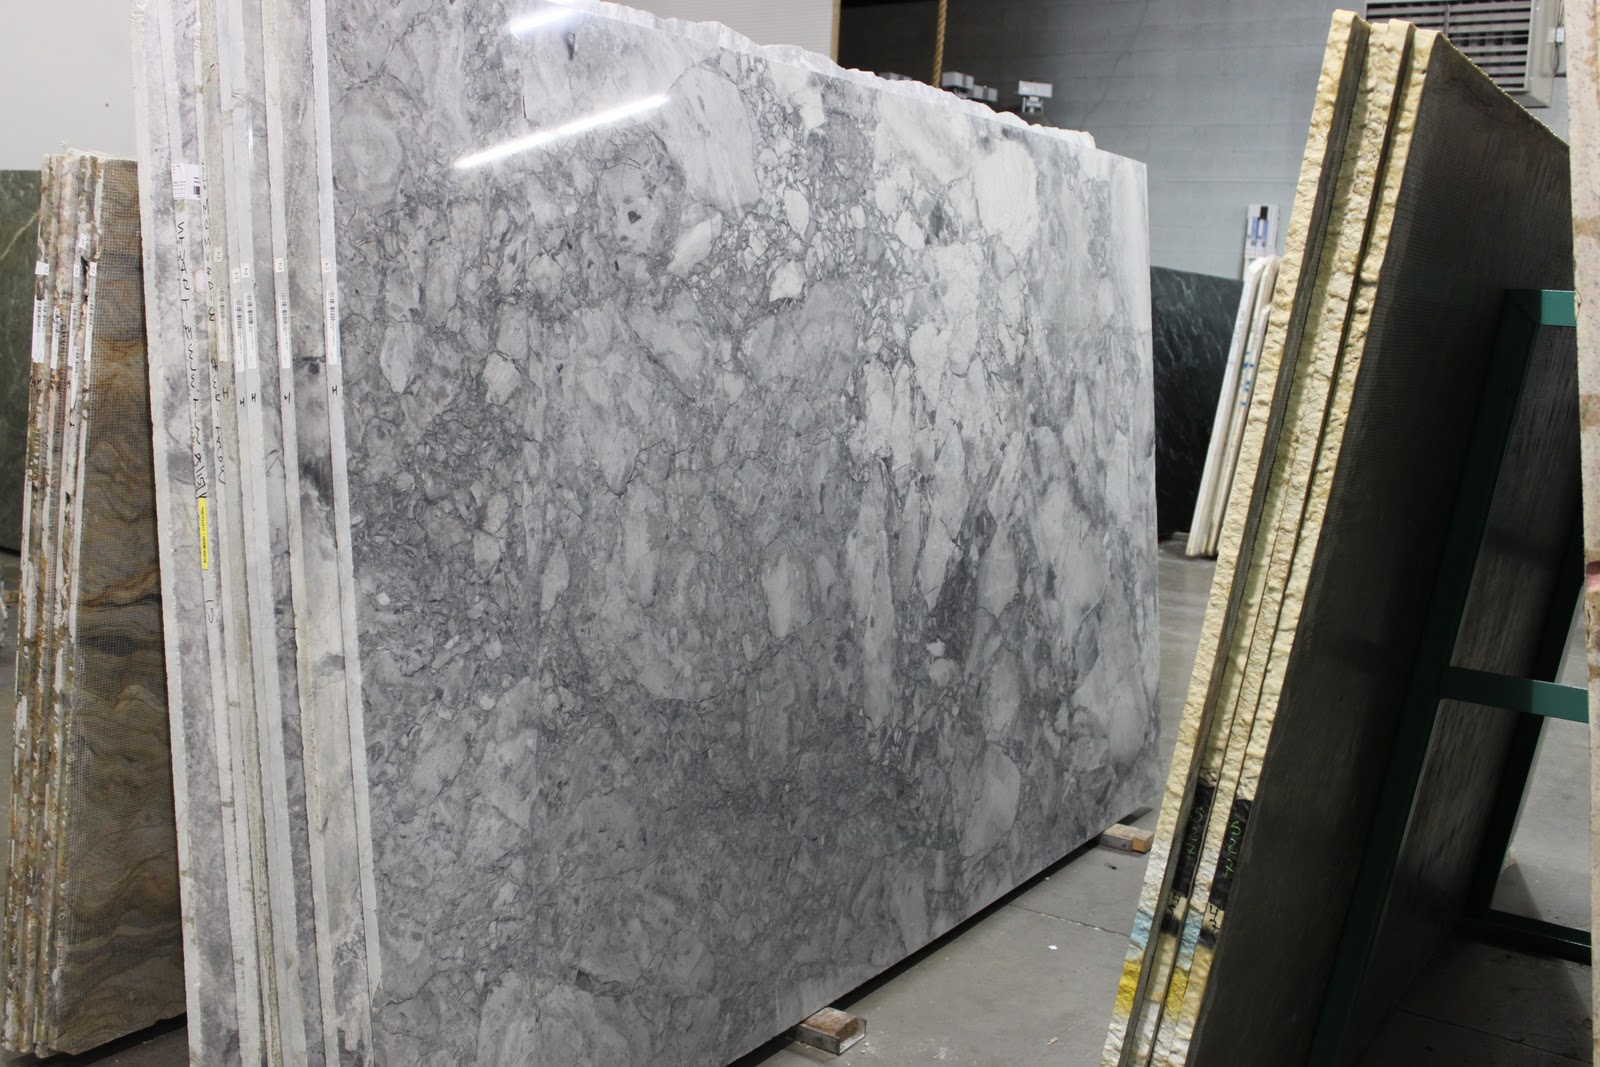 Cory With Italia Granite Said You Have To Be Careful Where It From Sometimes May Find A Lower Quality Slab Which Tend Brittle If